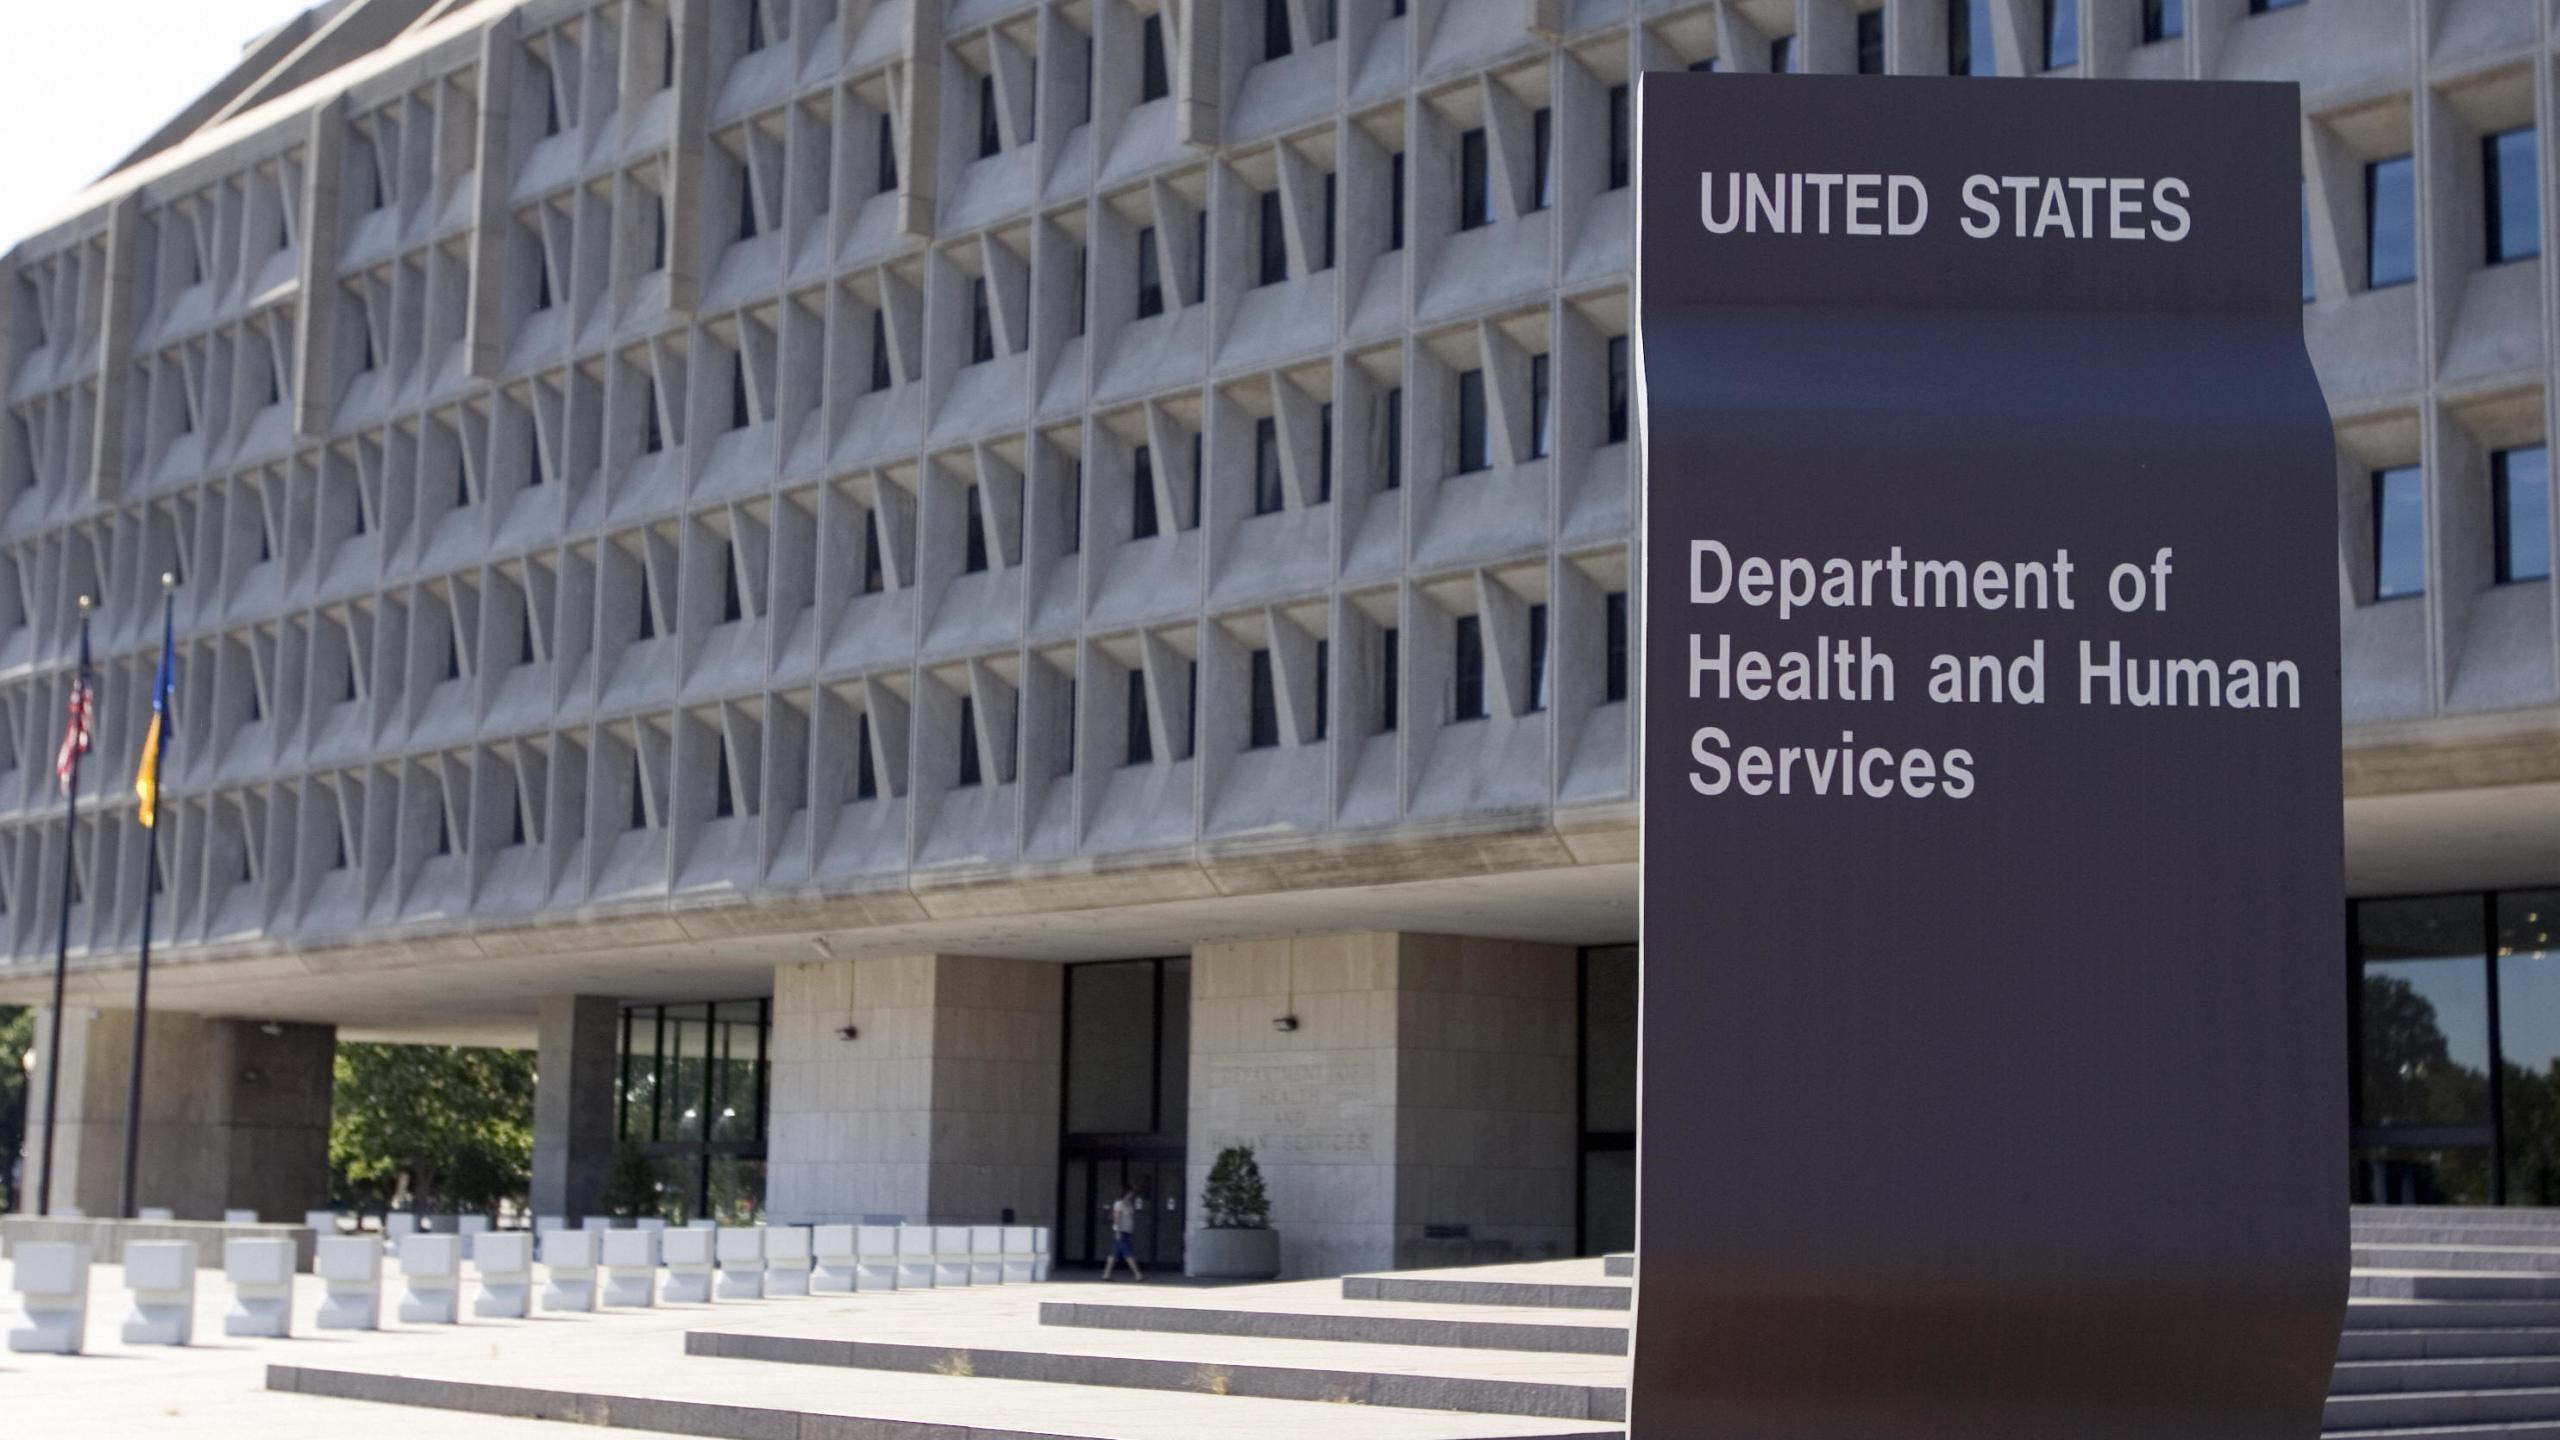 The U.S. Department of Health and Human Services building is shown in Washington, D.C. on July 21, 2007. (Credit: Saul Loeb/AFP/Getty Images)